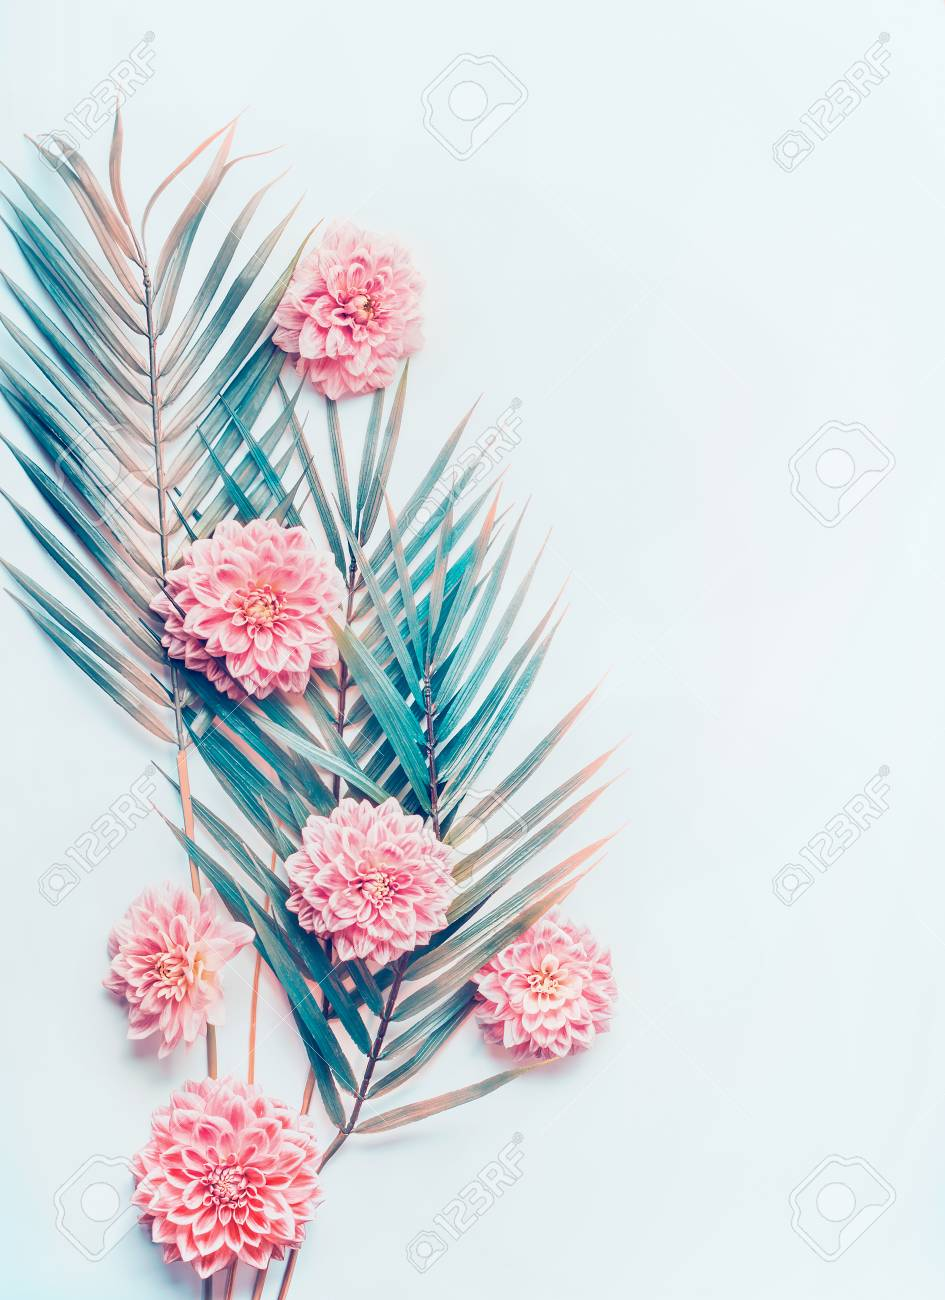 Creative Layout With Tropical Palm Leaves And Pastel Pink Flowers